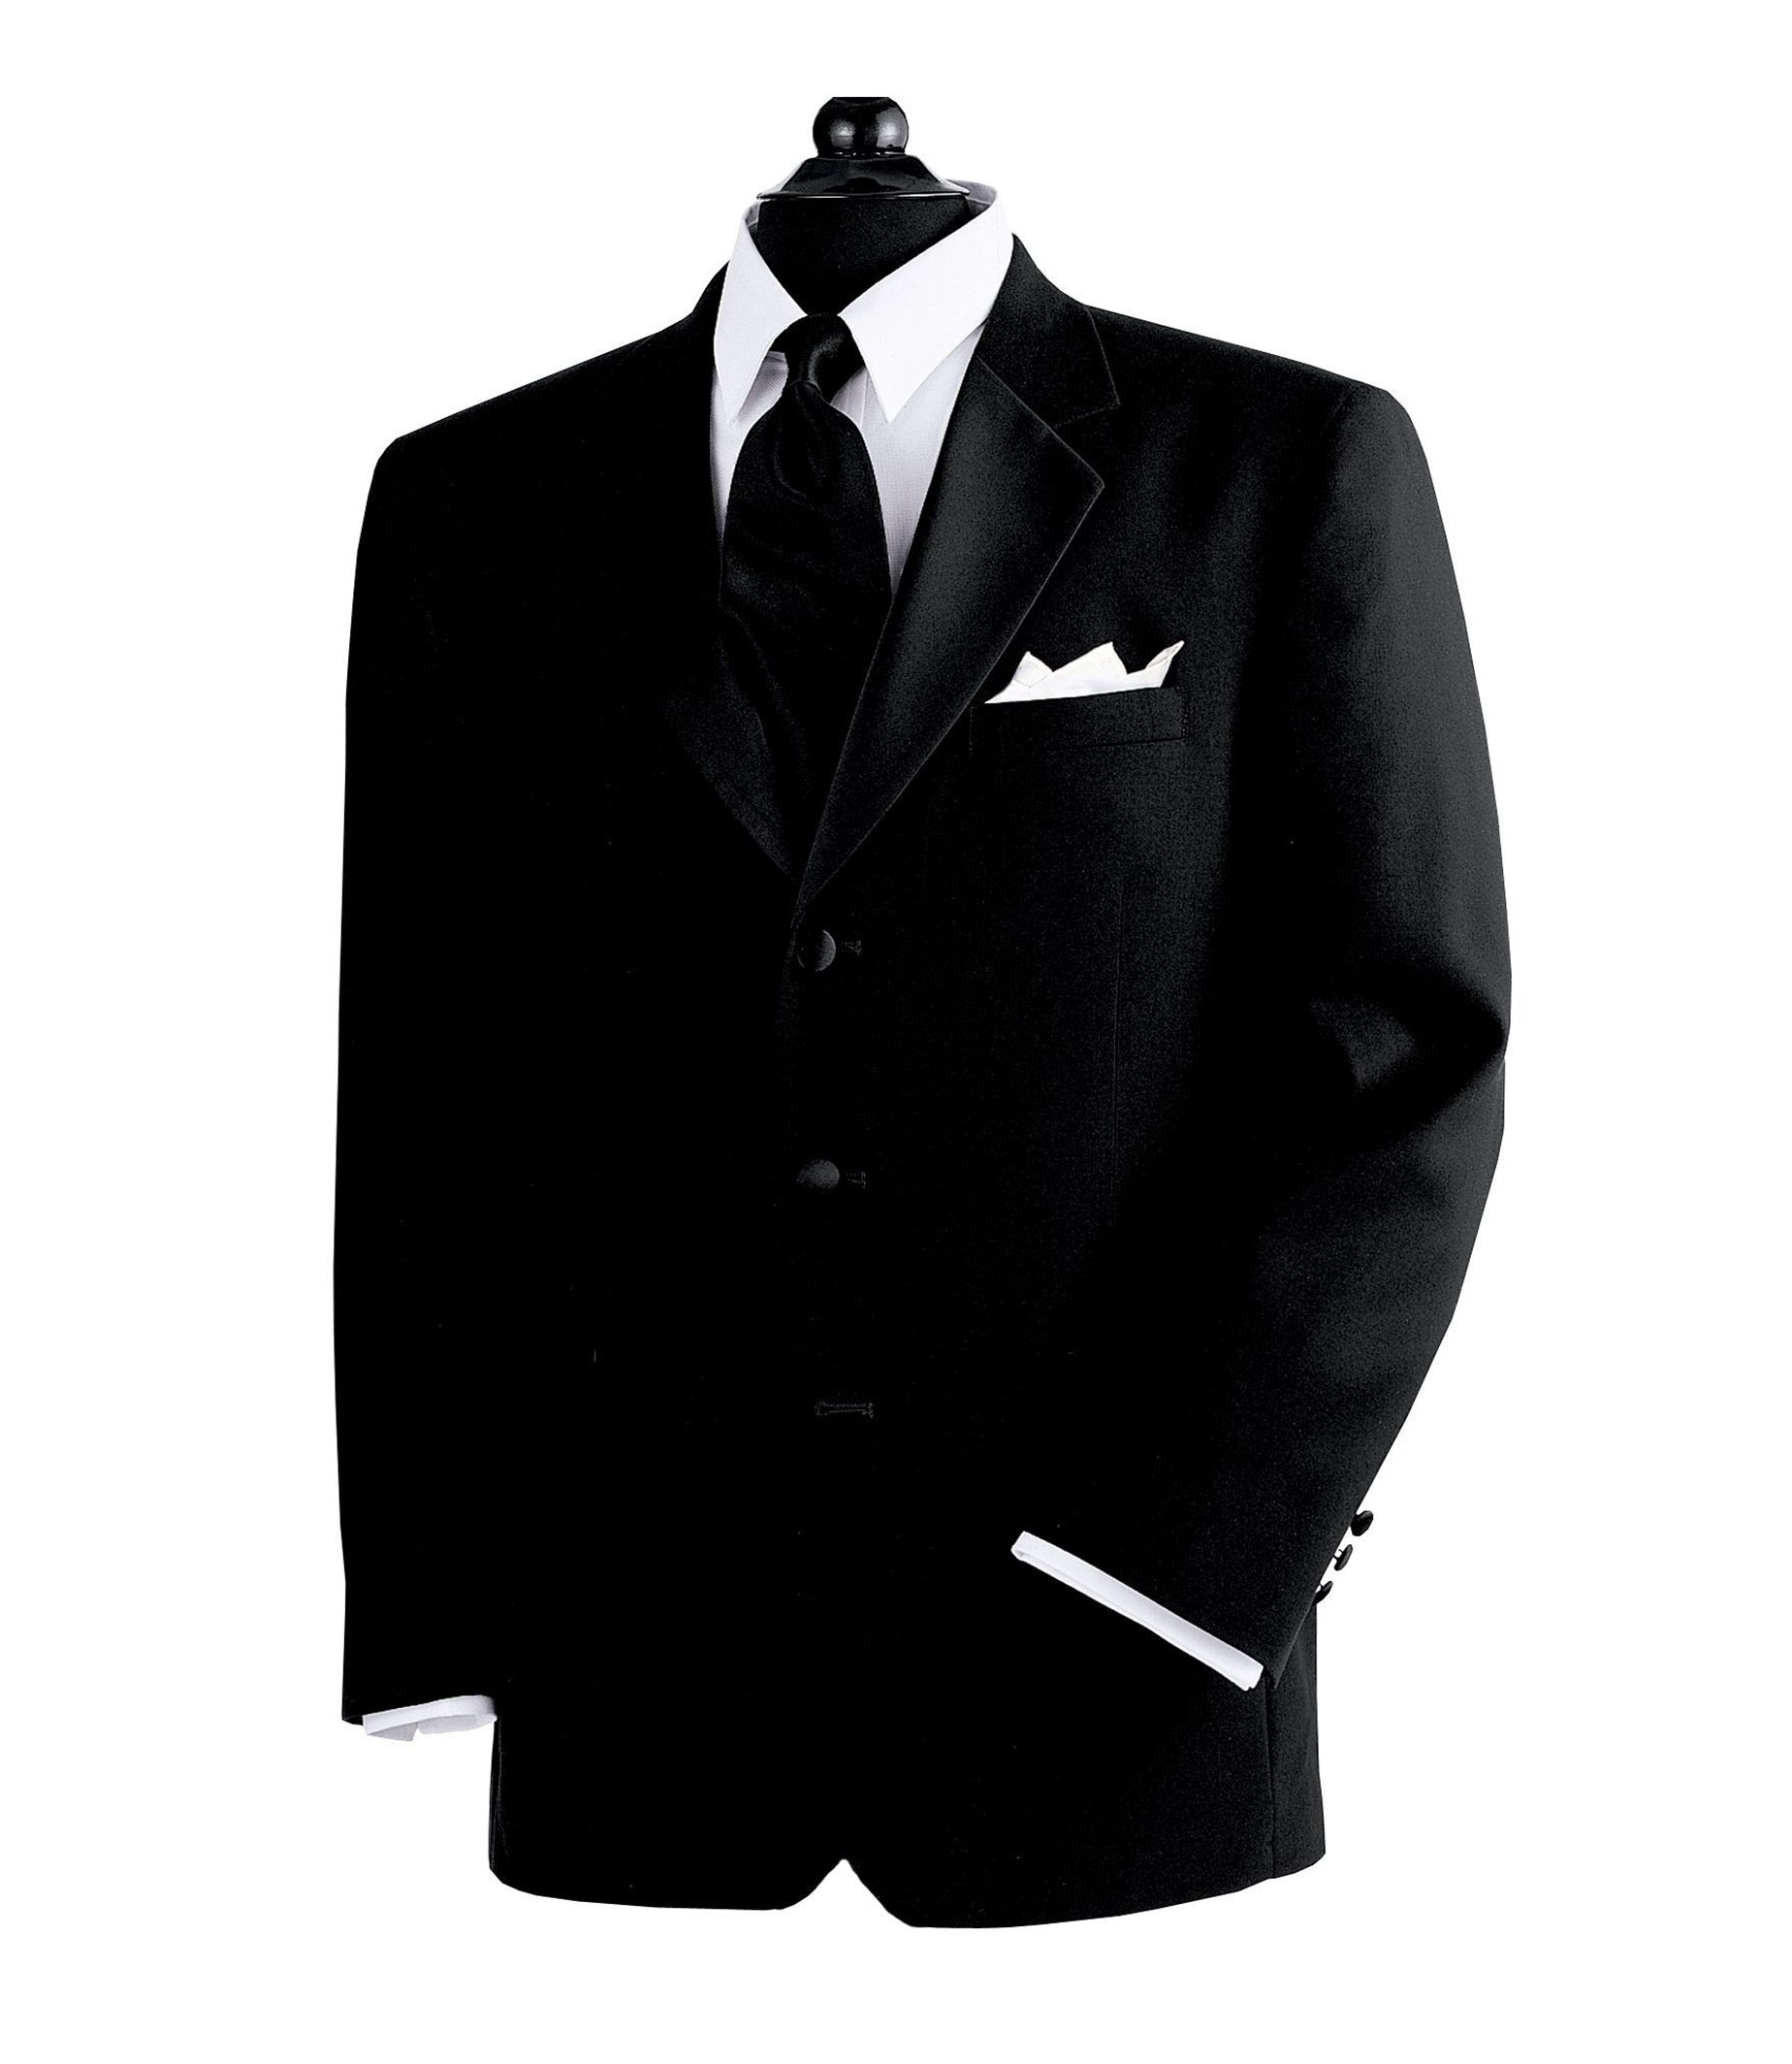 Men's Suit Black 3-Button Tuxedo Jacket- Sizes 48-52 JoS. A. Bank - BLACK - 46 - X-LONG